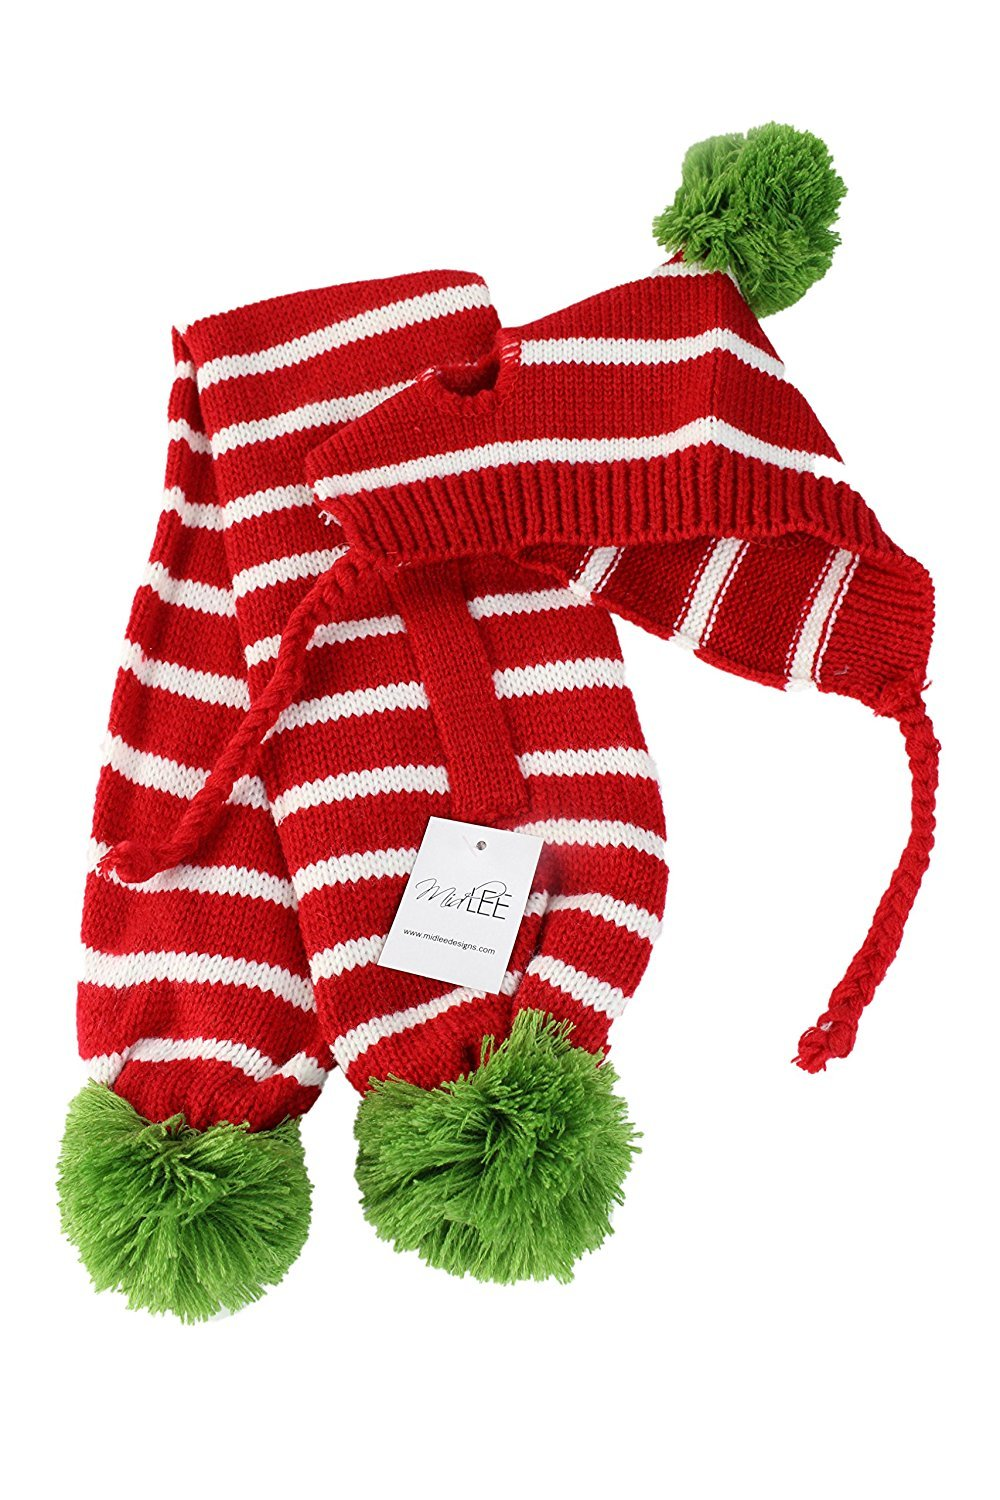 Red & White Striped Pom Pom Dog Hat & Scarf for Small Dogs by Midlee